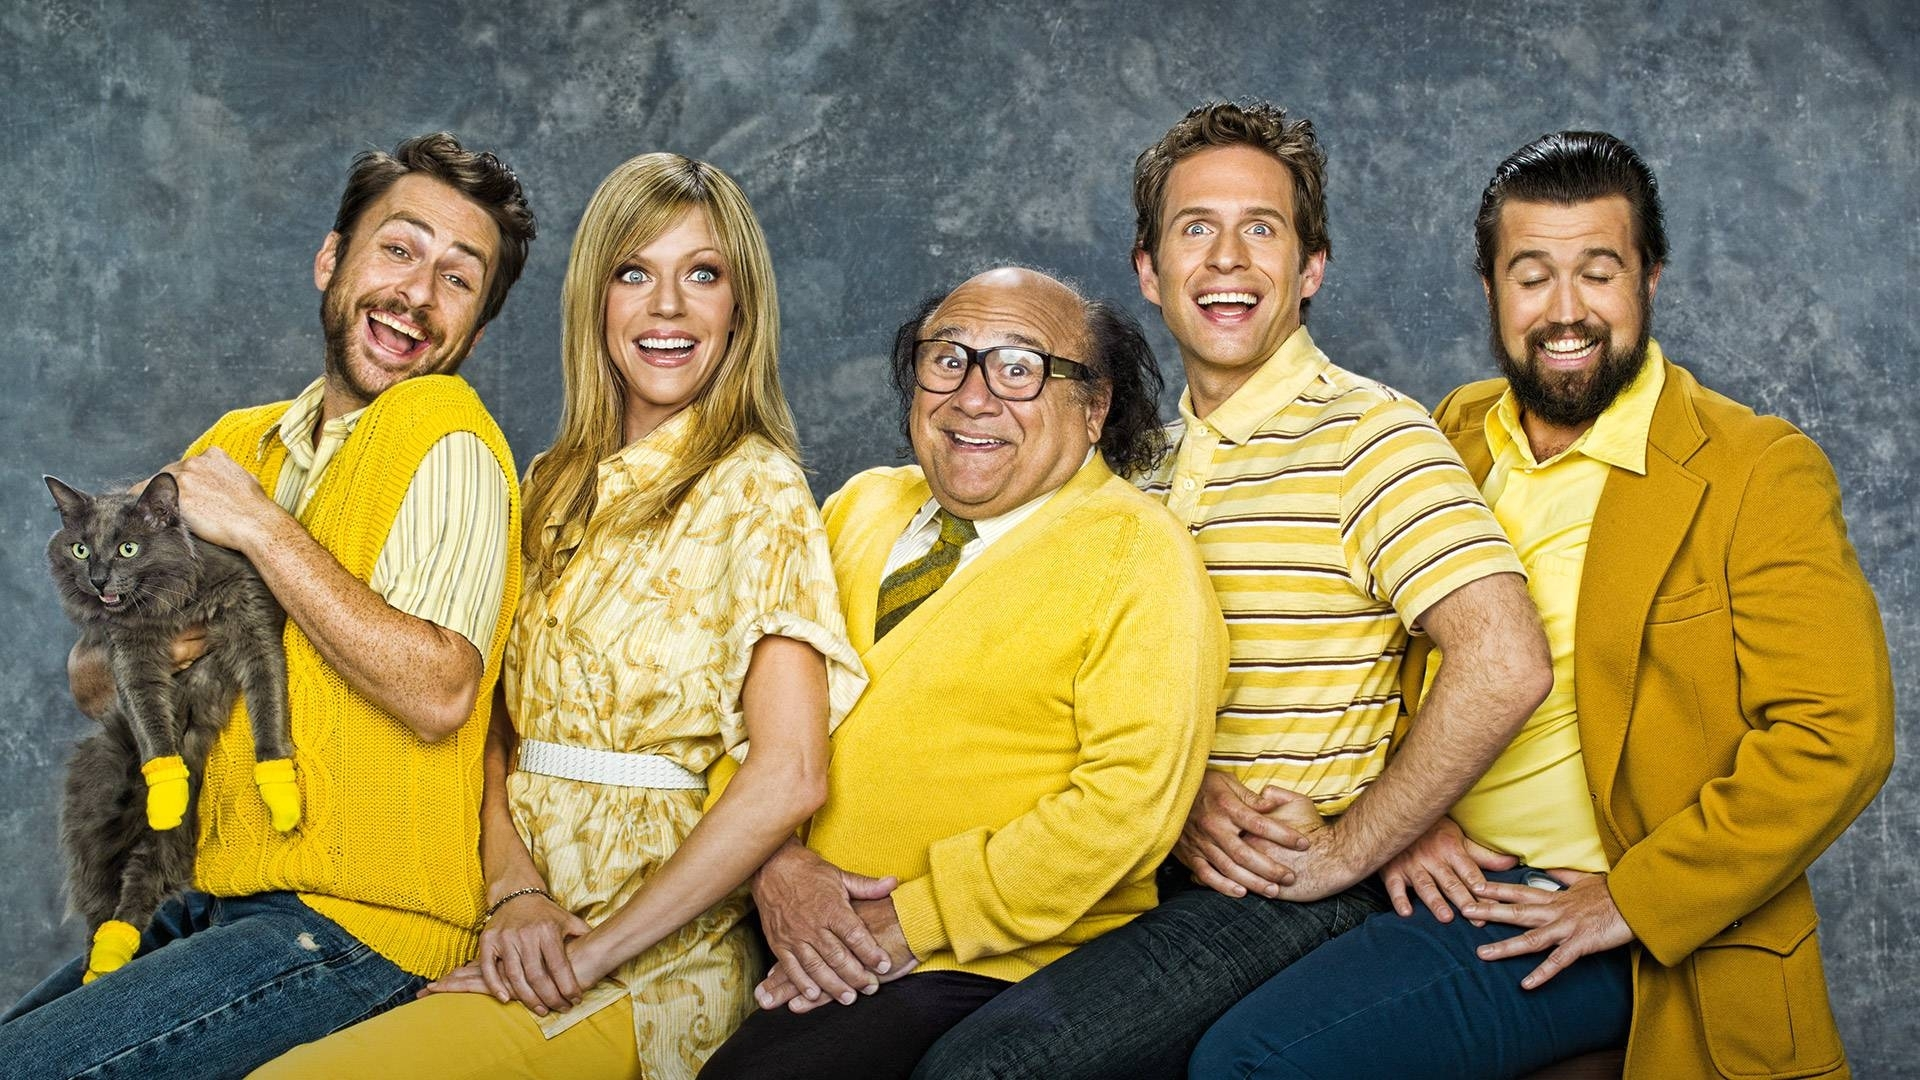 the gang does wallpapers (it's always sunny in philadelphia) - album